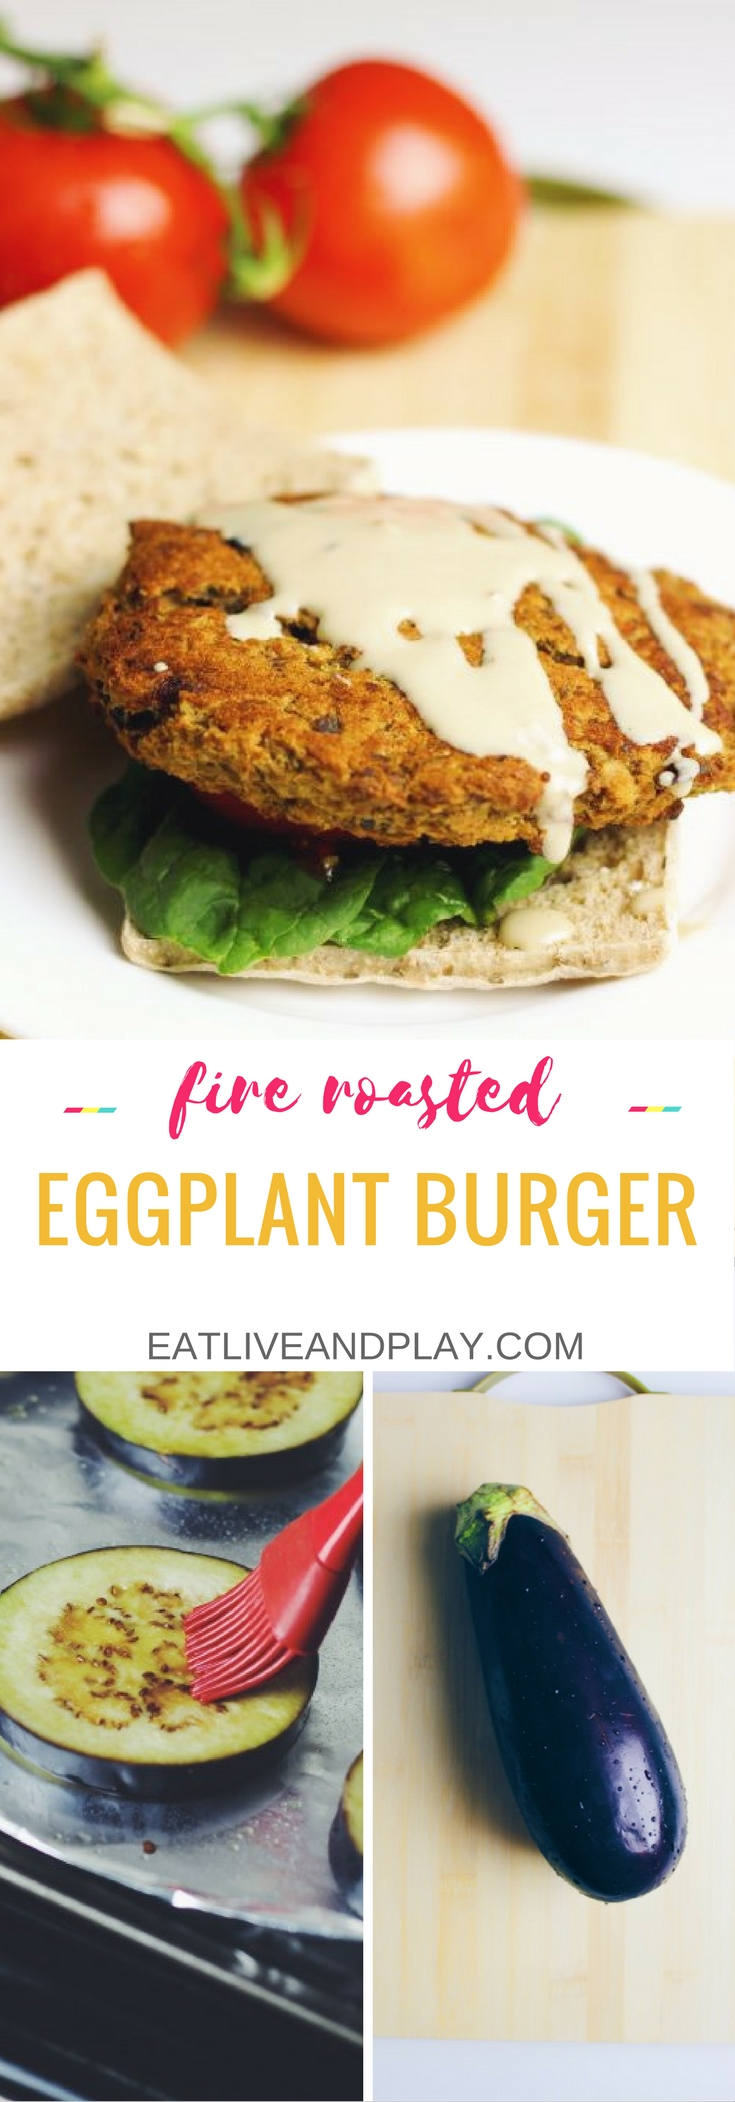 Move over eggplant parmesan this eggplant recipe is the right way to enjoy eggplant – in a burger! Eggplant's meaty texture makes it perfect in a burger so if you're a meat lover these burgers won't disappoint.